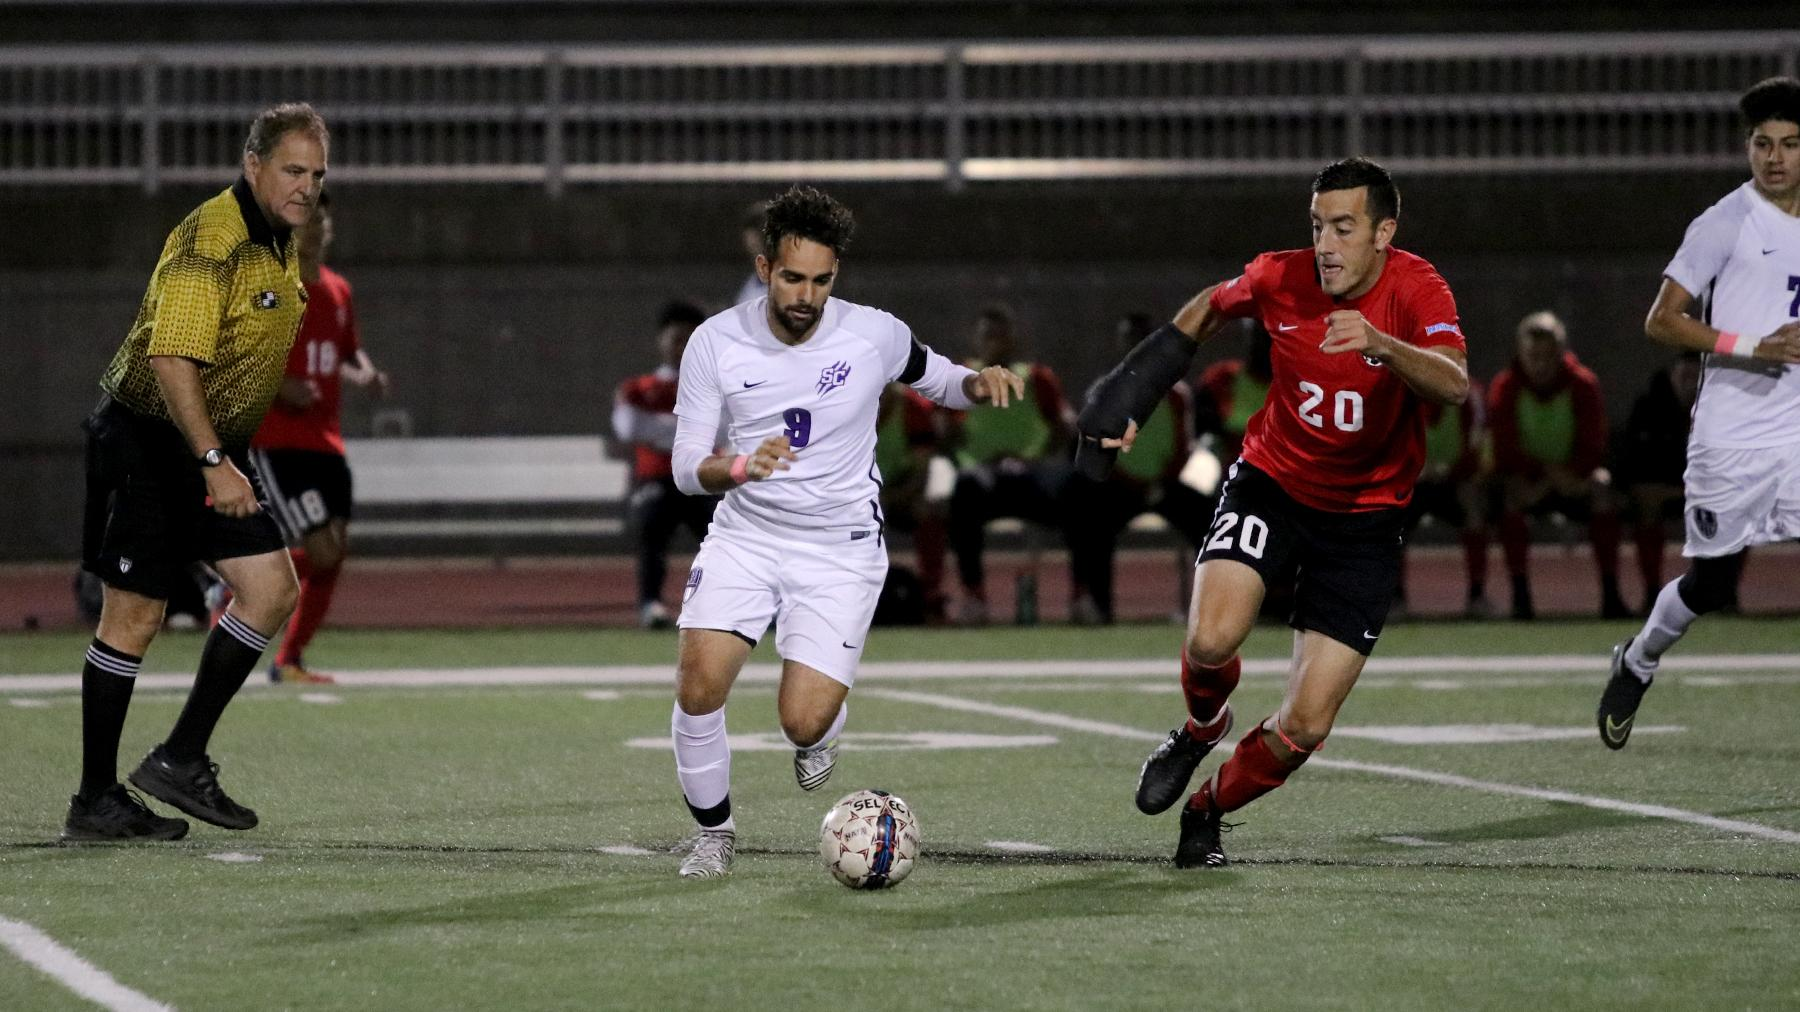 Men's Soccer Drops 3-0 Decision to McPherson